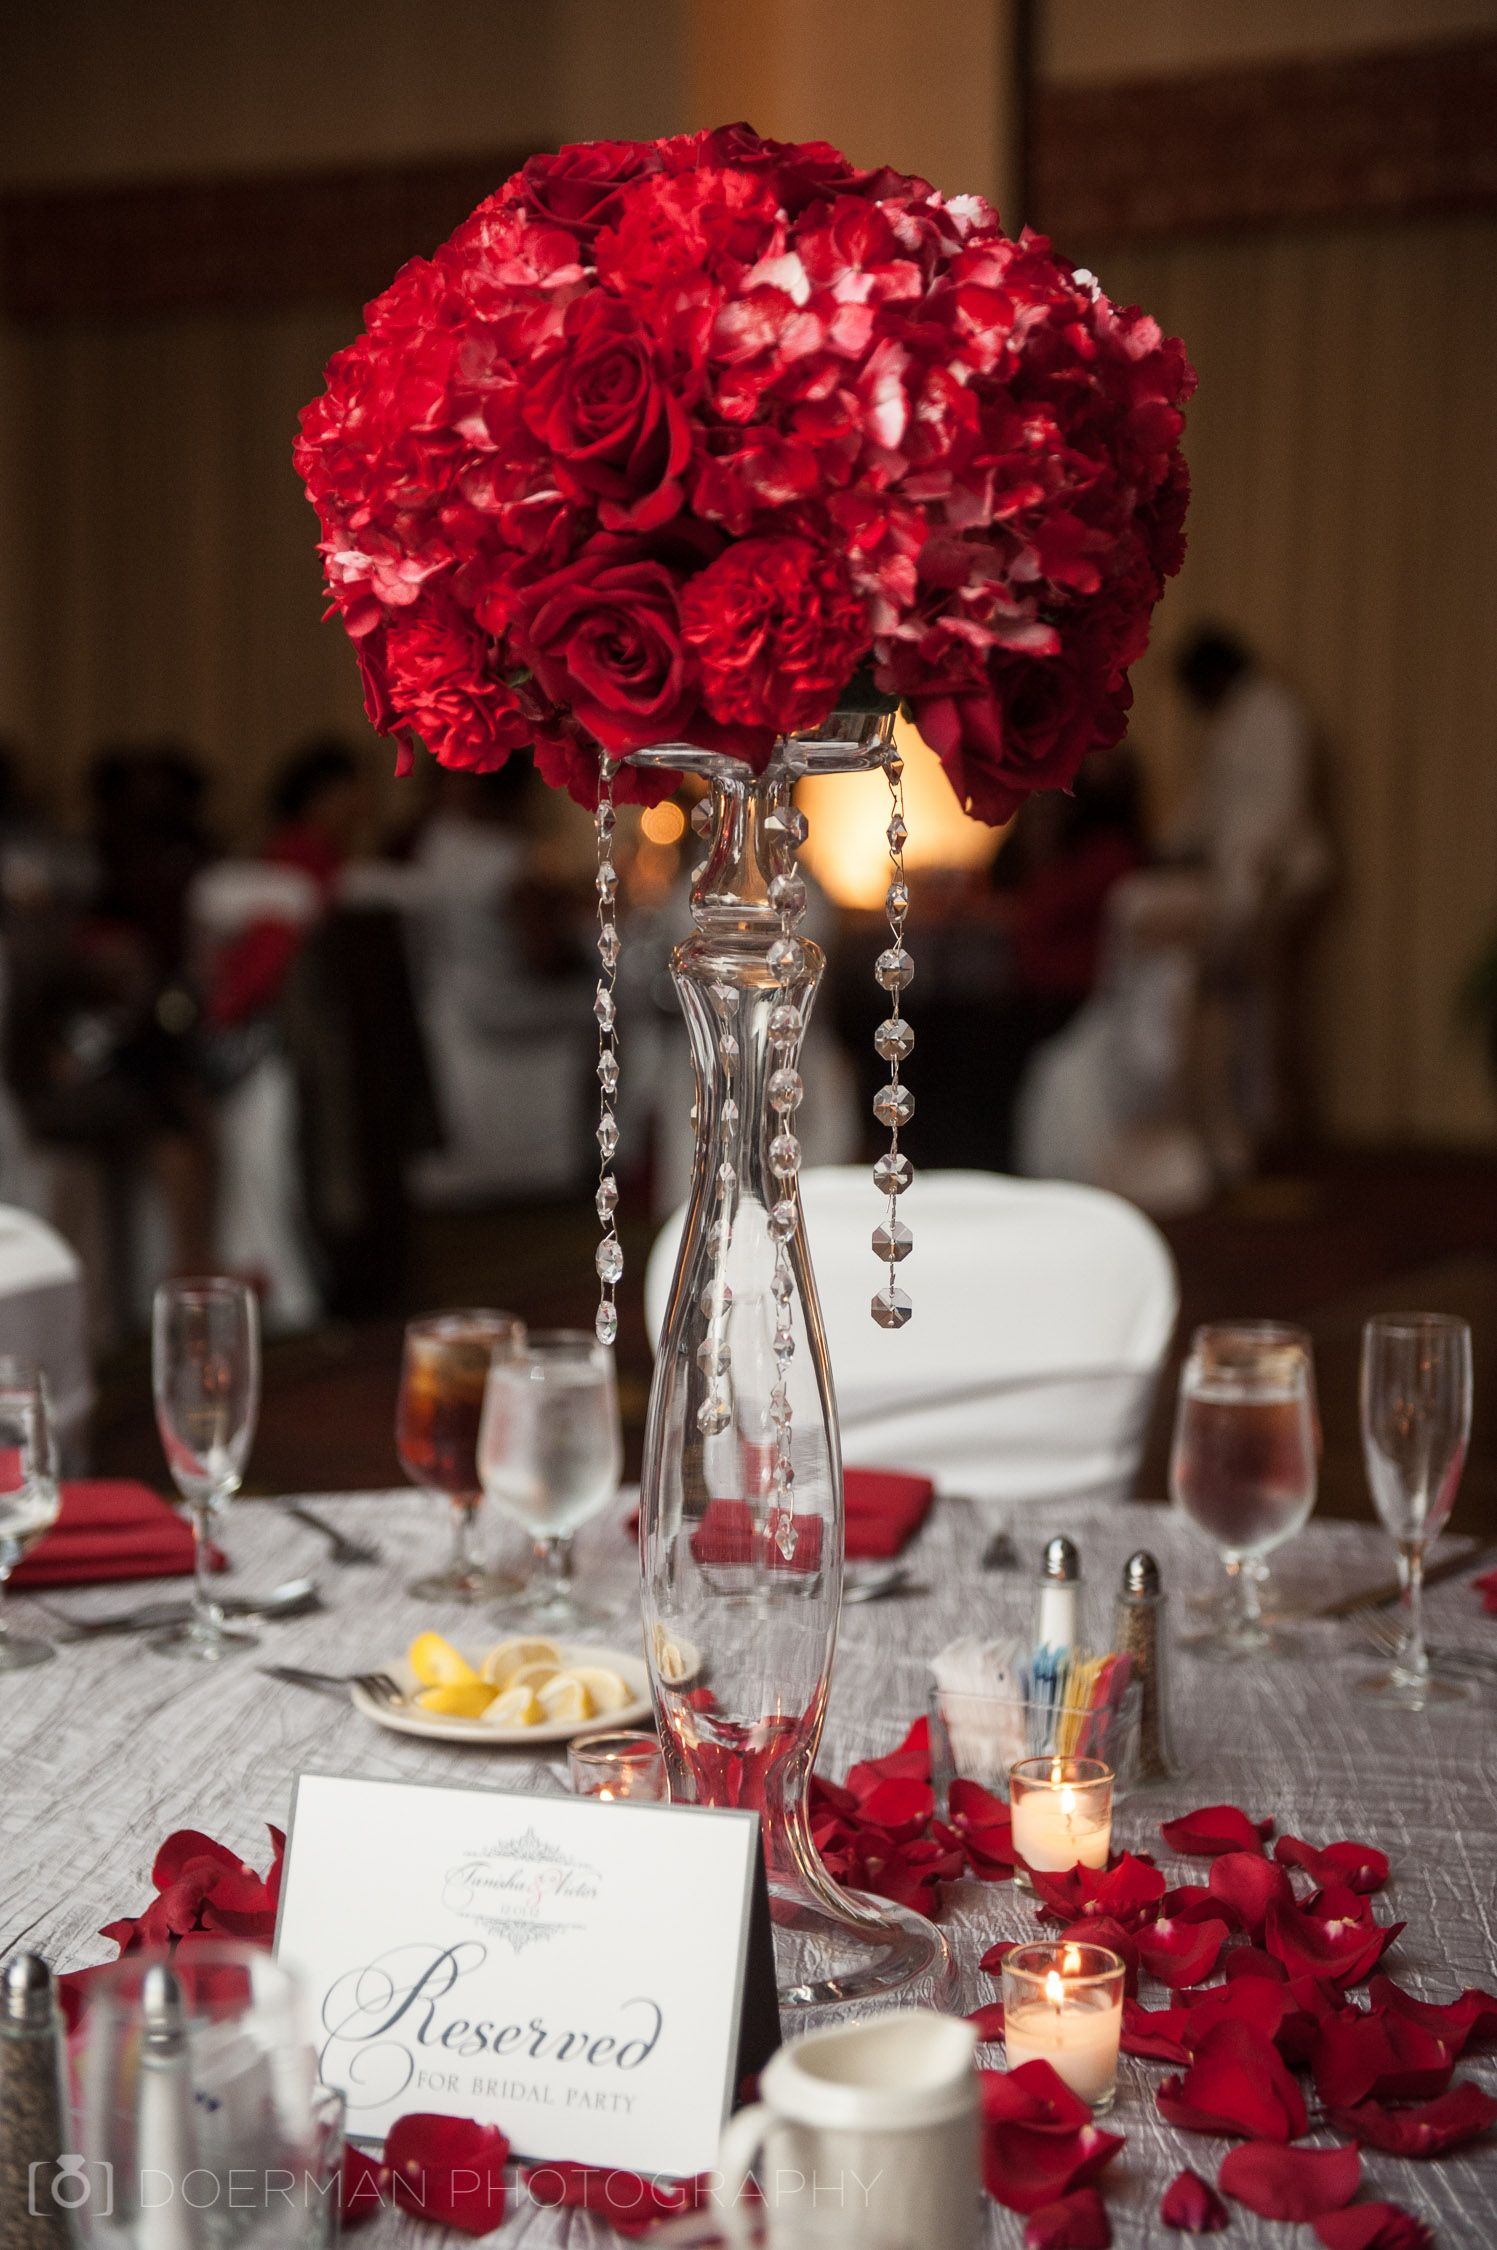 Red flower ball centerpiece with hanging jewels